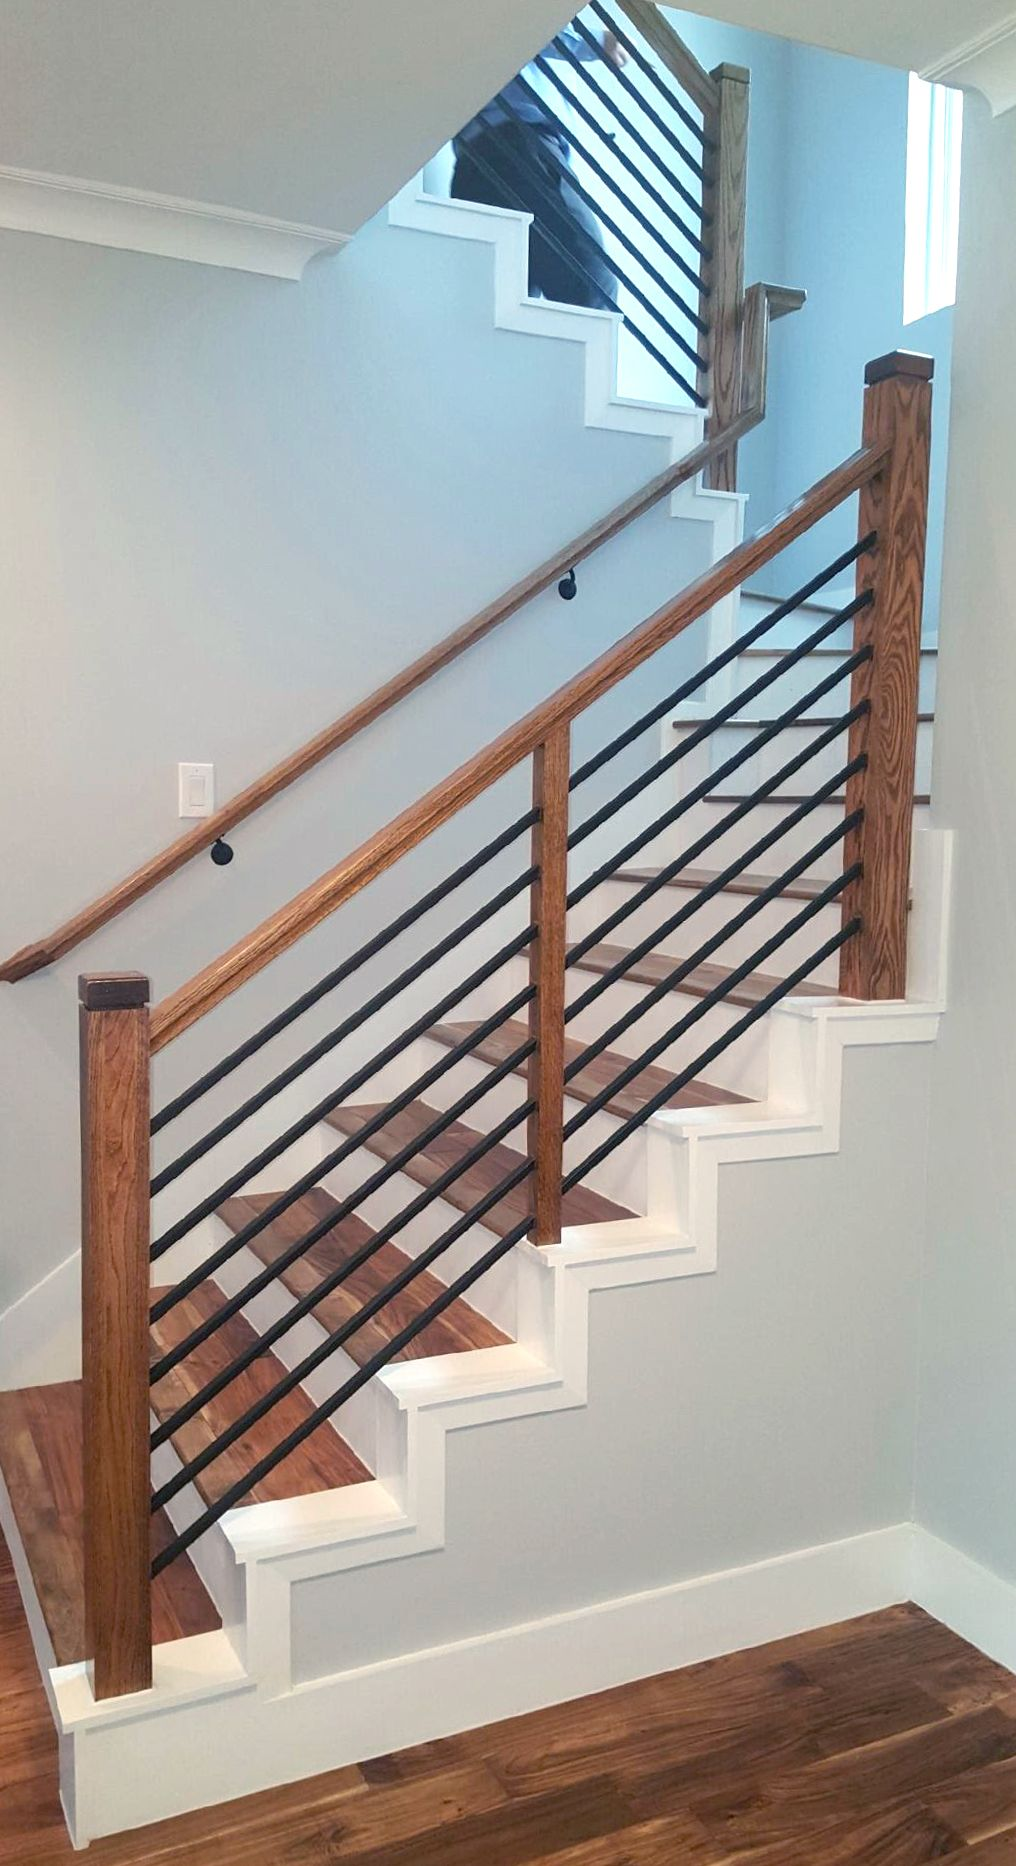 Railing With Bars Rather Than Cables Https Www Stairwarehouse